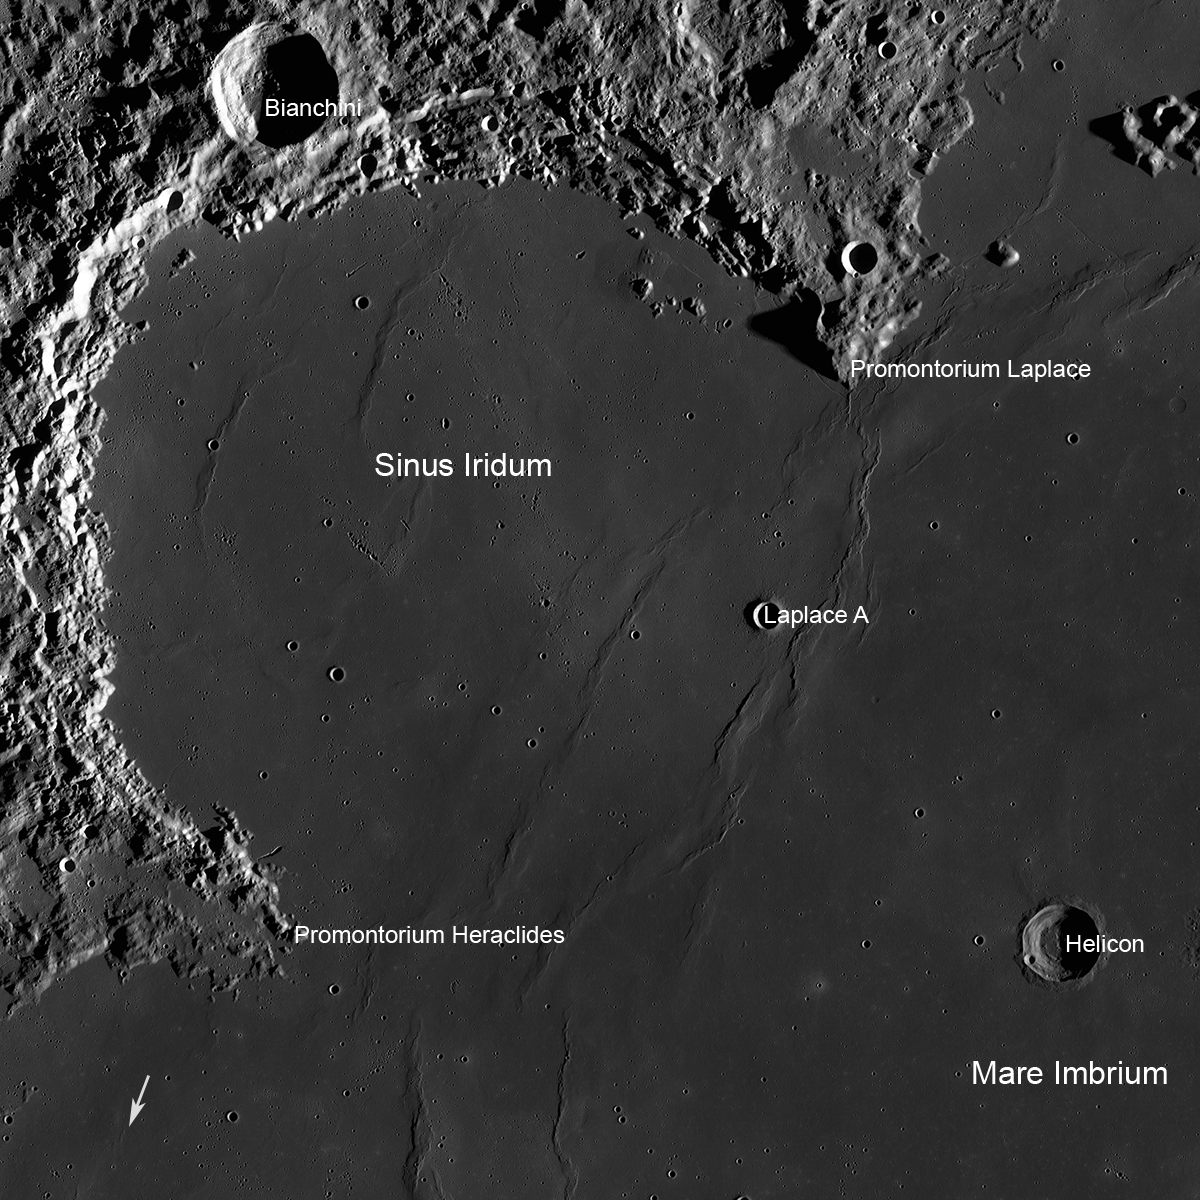 Potential landing sites for Luna-25 are selected